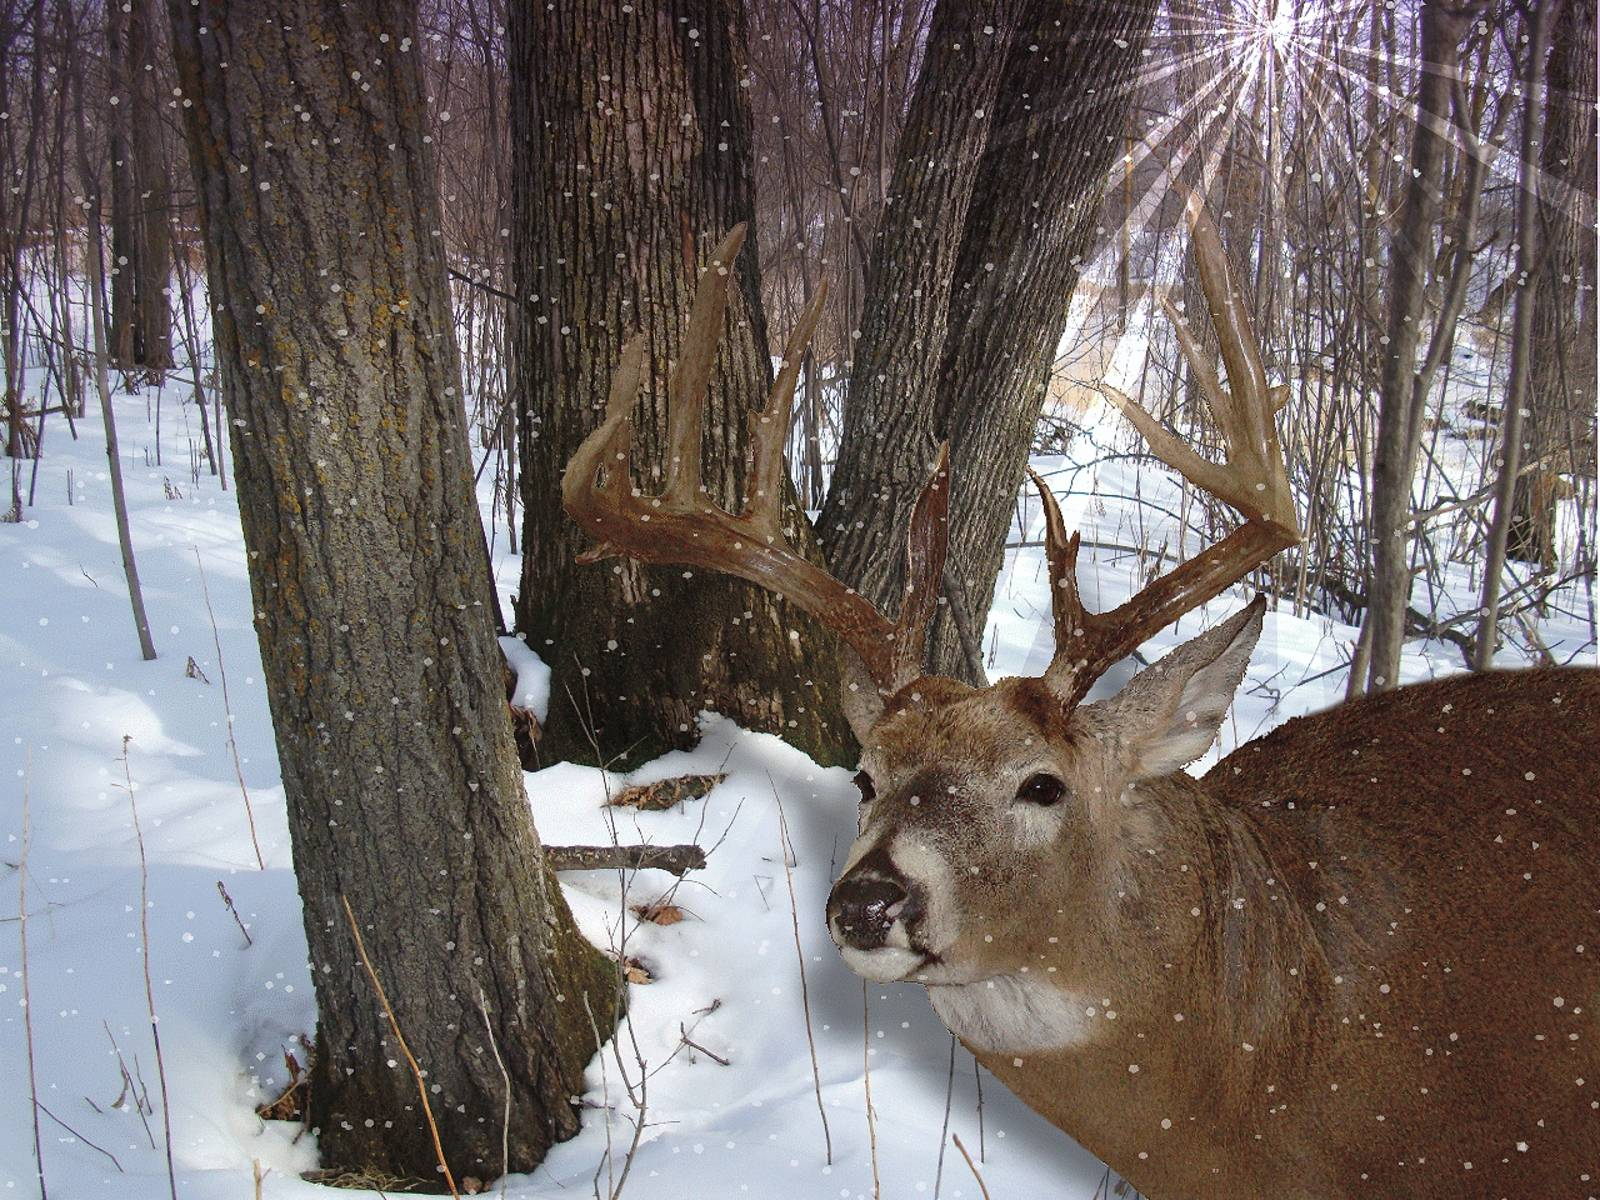 Free Whitetail Deer Wallpapers - Wallpaper Cave